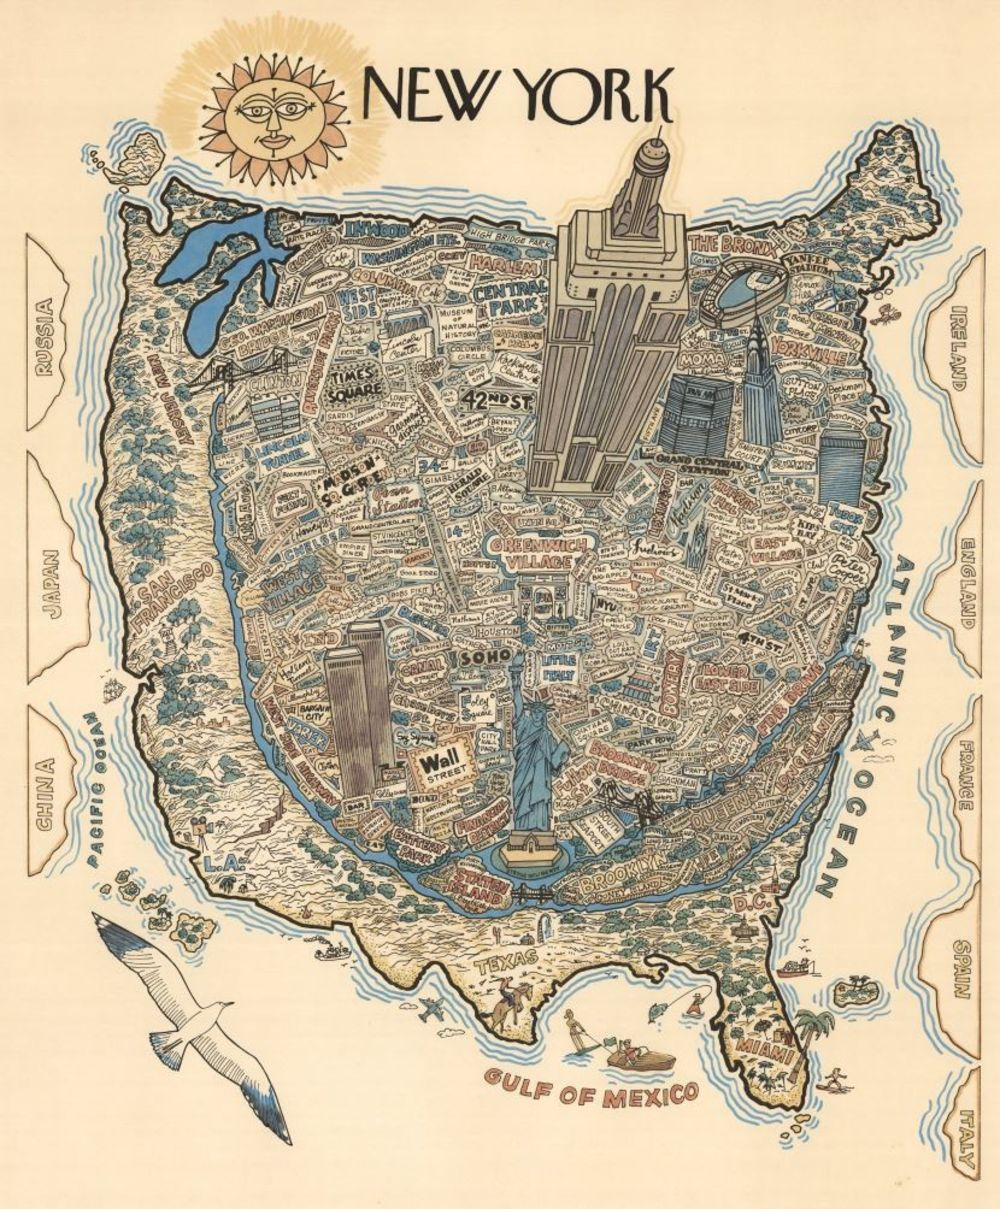 New Yorker Cover Map Of Us A Wonderfully Stereotypical 1970s Map of New York   Bloomberg